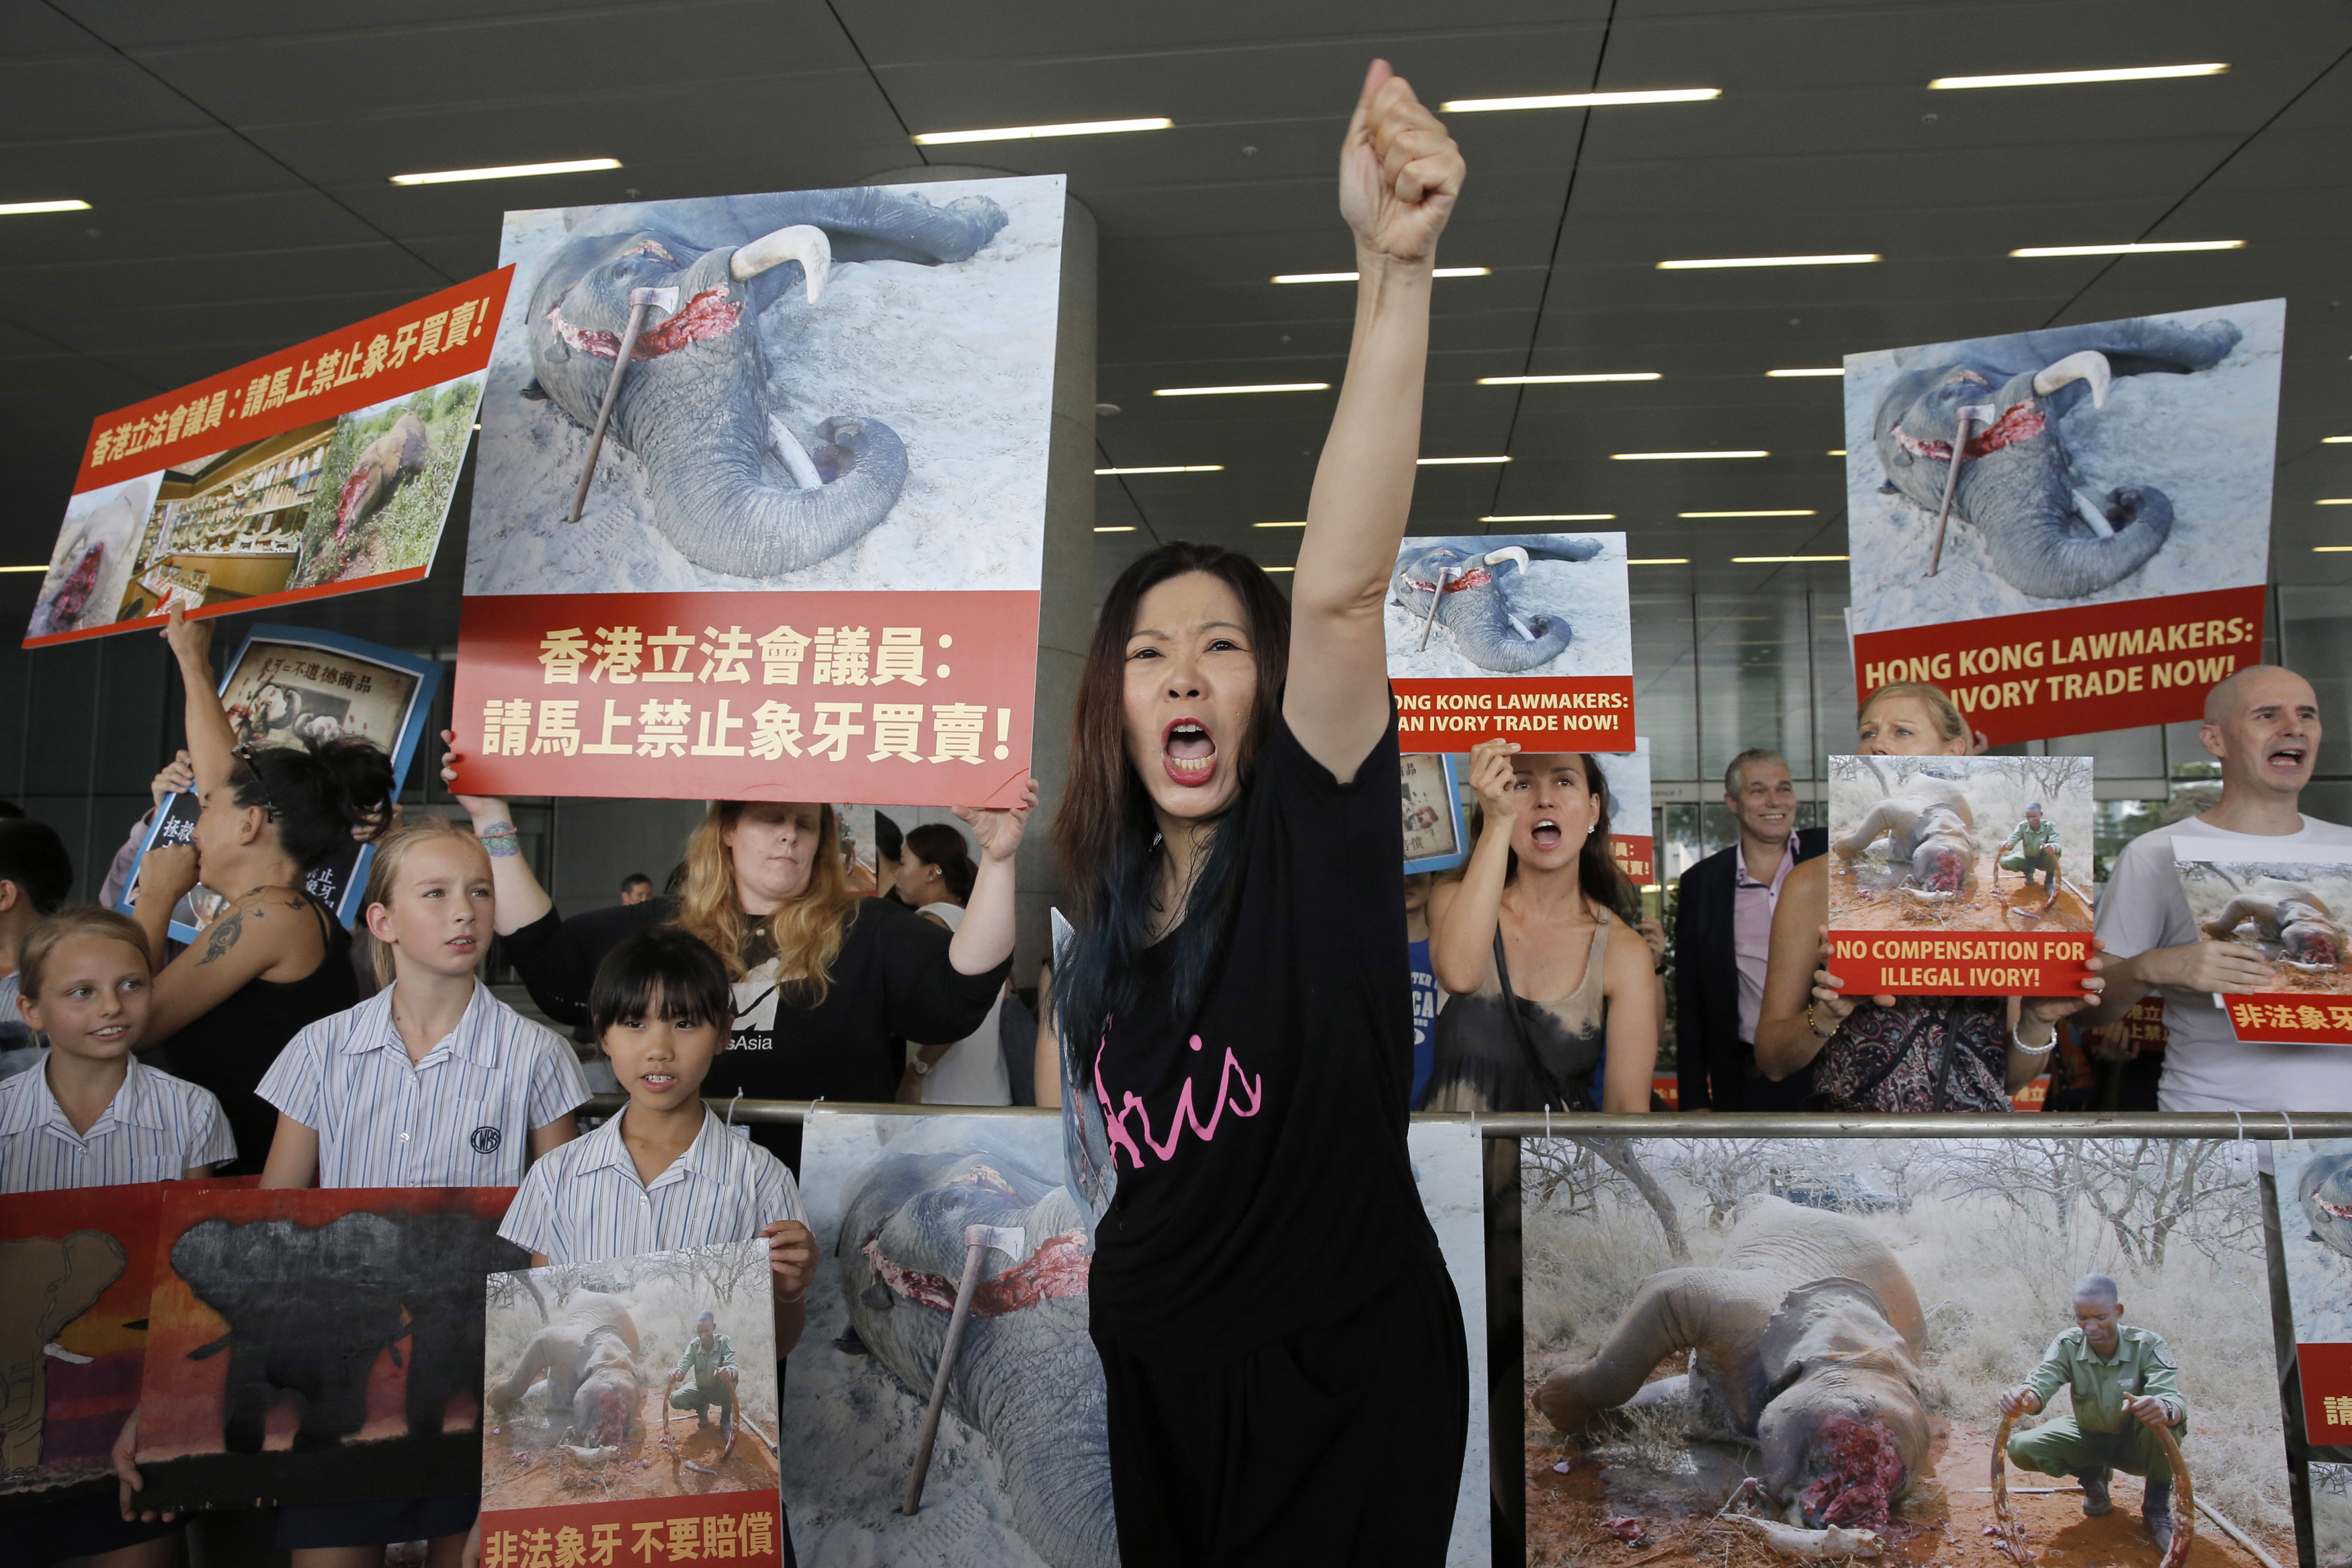 FILE - In this June 6, 2017, file photo, animal conservation activists hold pictures of elephants being killed for their ivory tusks, outside the Legislative Council in Hong Kong. Hong Kong customs officers have intercepted a record 8.3 tons of pangolin scales and hundreds of elephant tusks worth more than $8 million combined, underscoring the threat to endangered species from demand in Asia. (AP Photo/Kin Cheung, File)